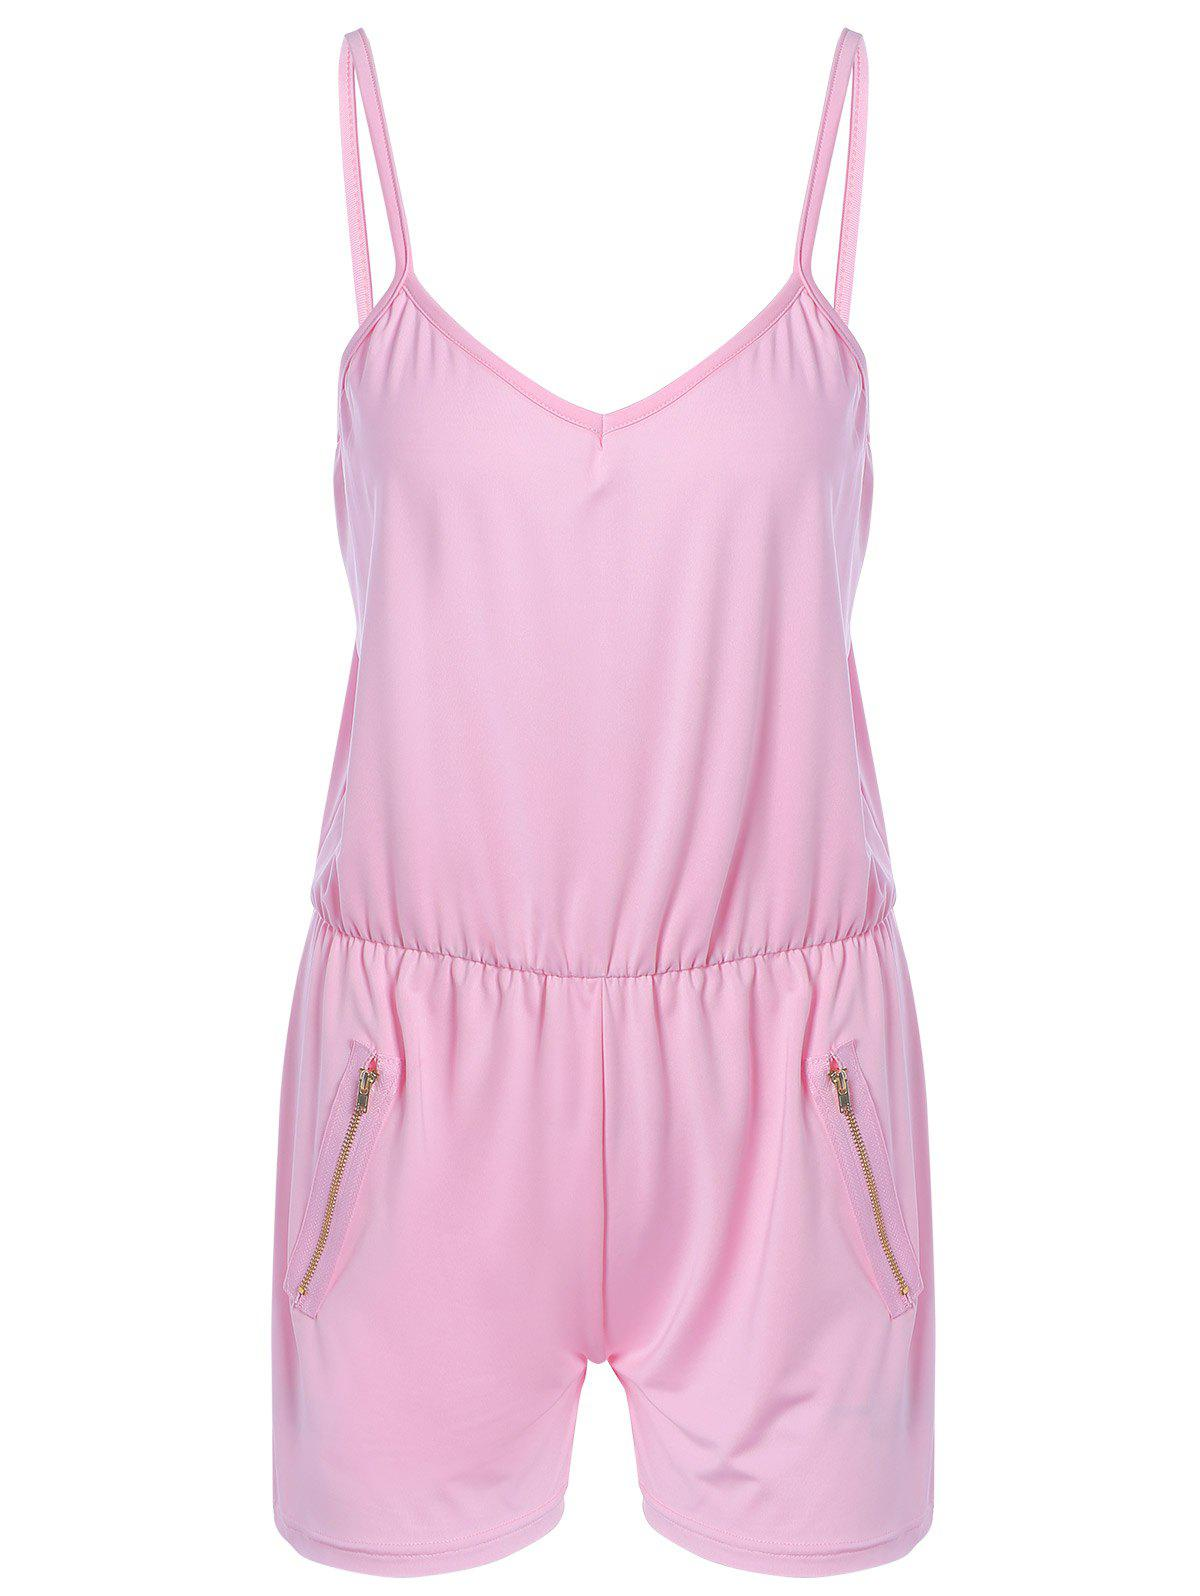 Simple Zipped Backless Romper For Women - PINK XL